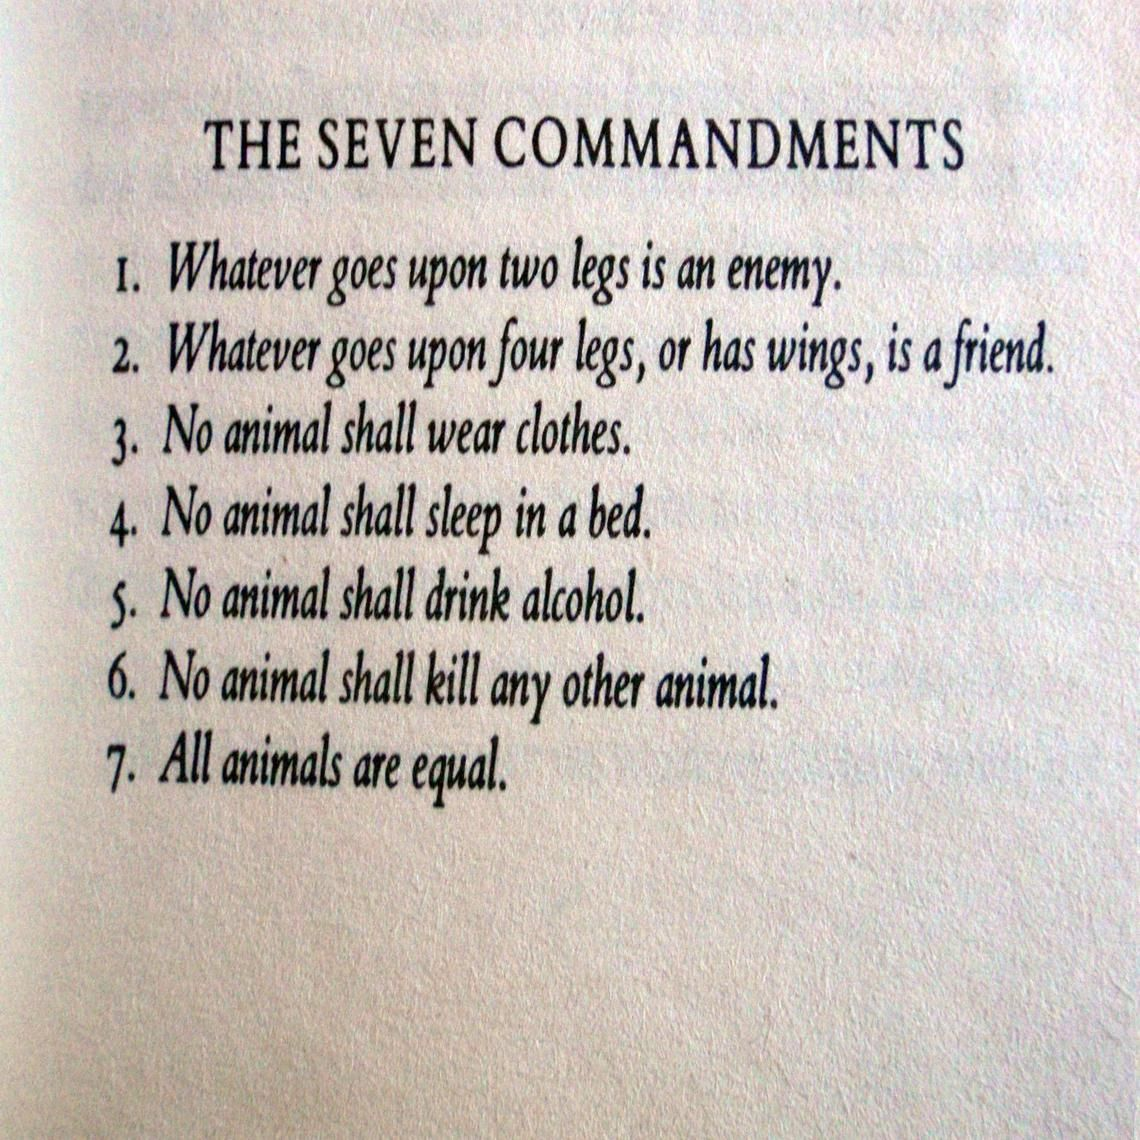 george orwell s animal farm the 7 commandments george orwell s animal farm the 7 commandments